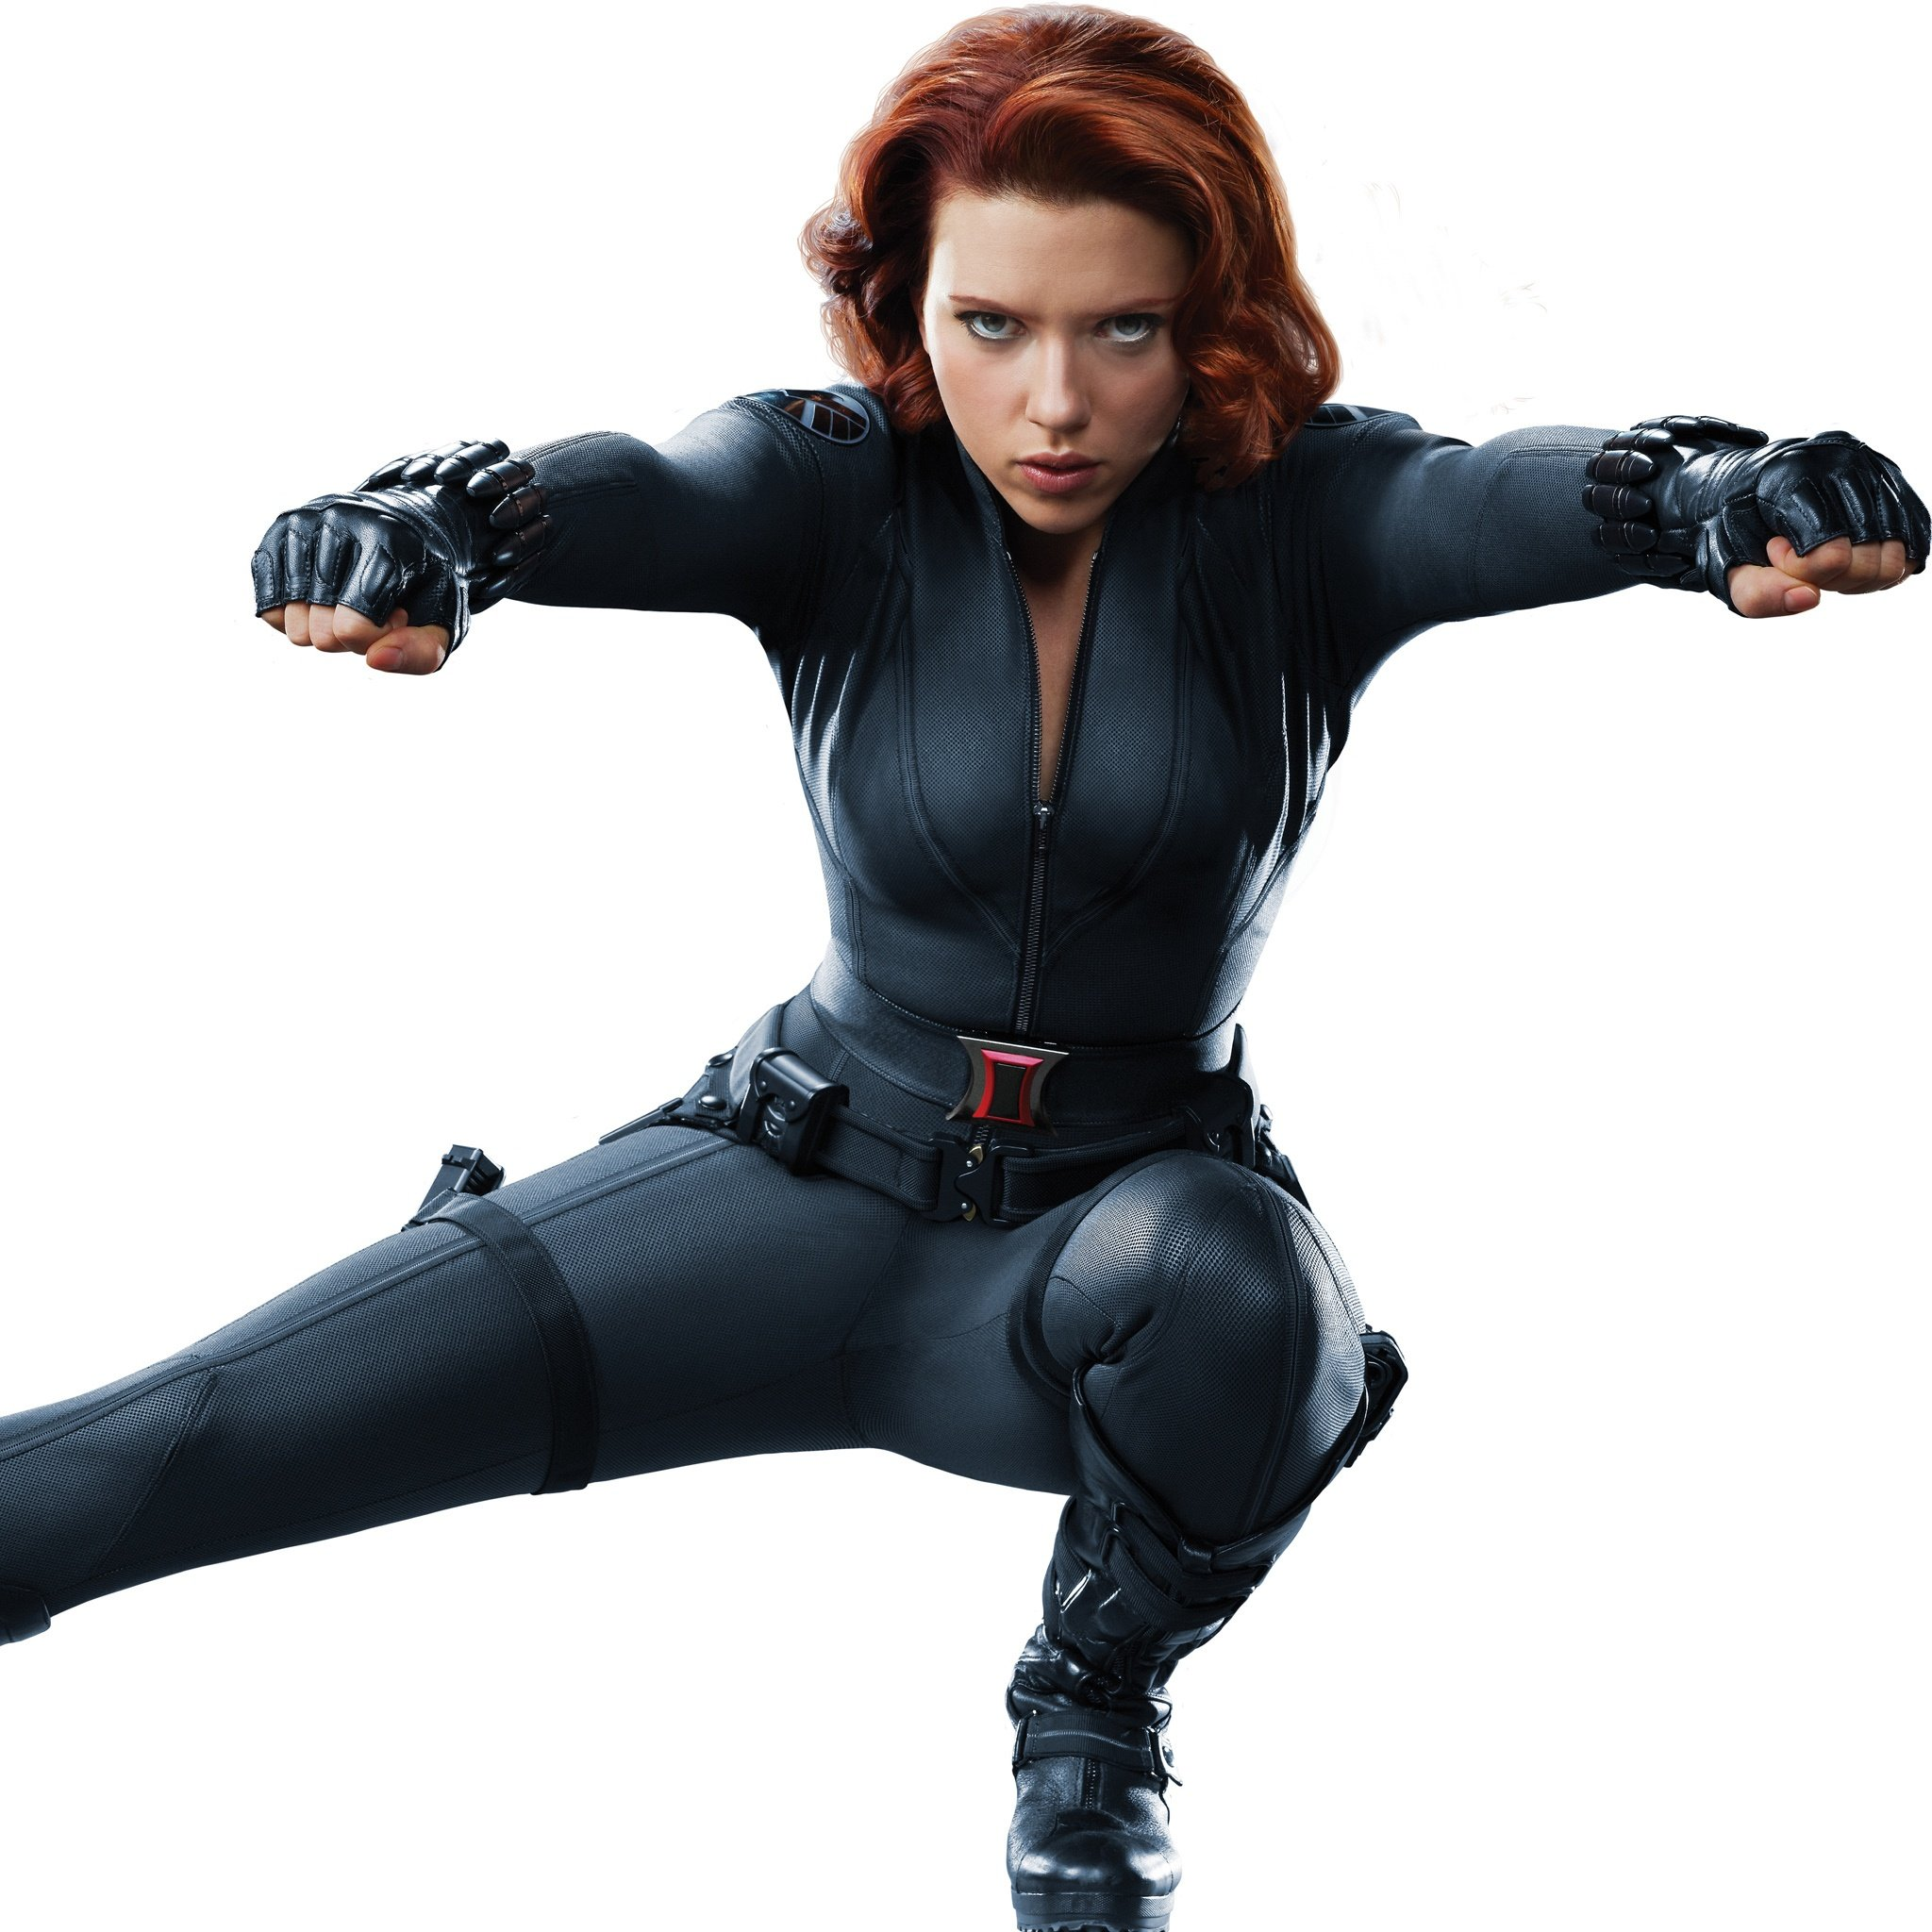 The Avengers Black Widow HD Wallpaper   iHD Wallpapers 2048x2048